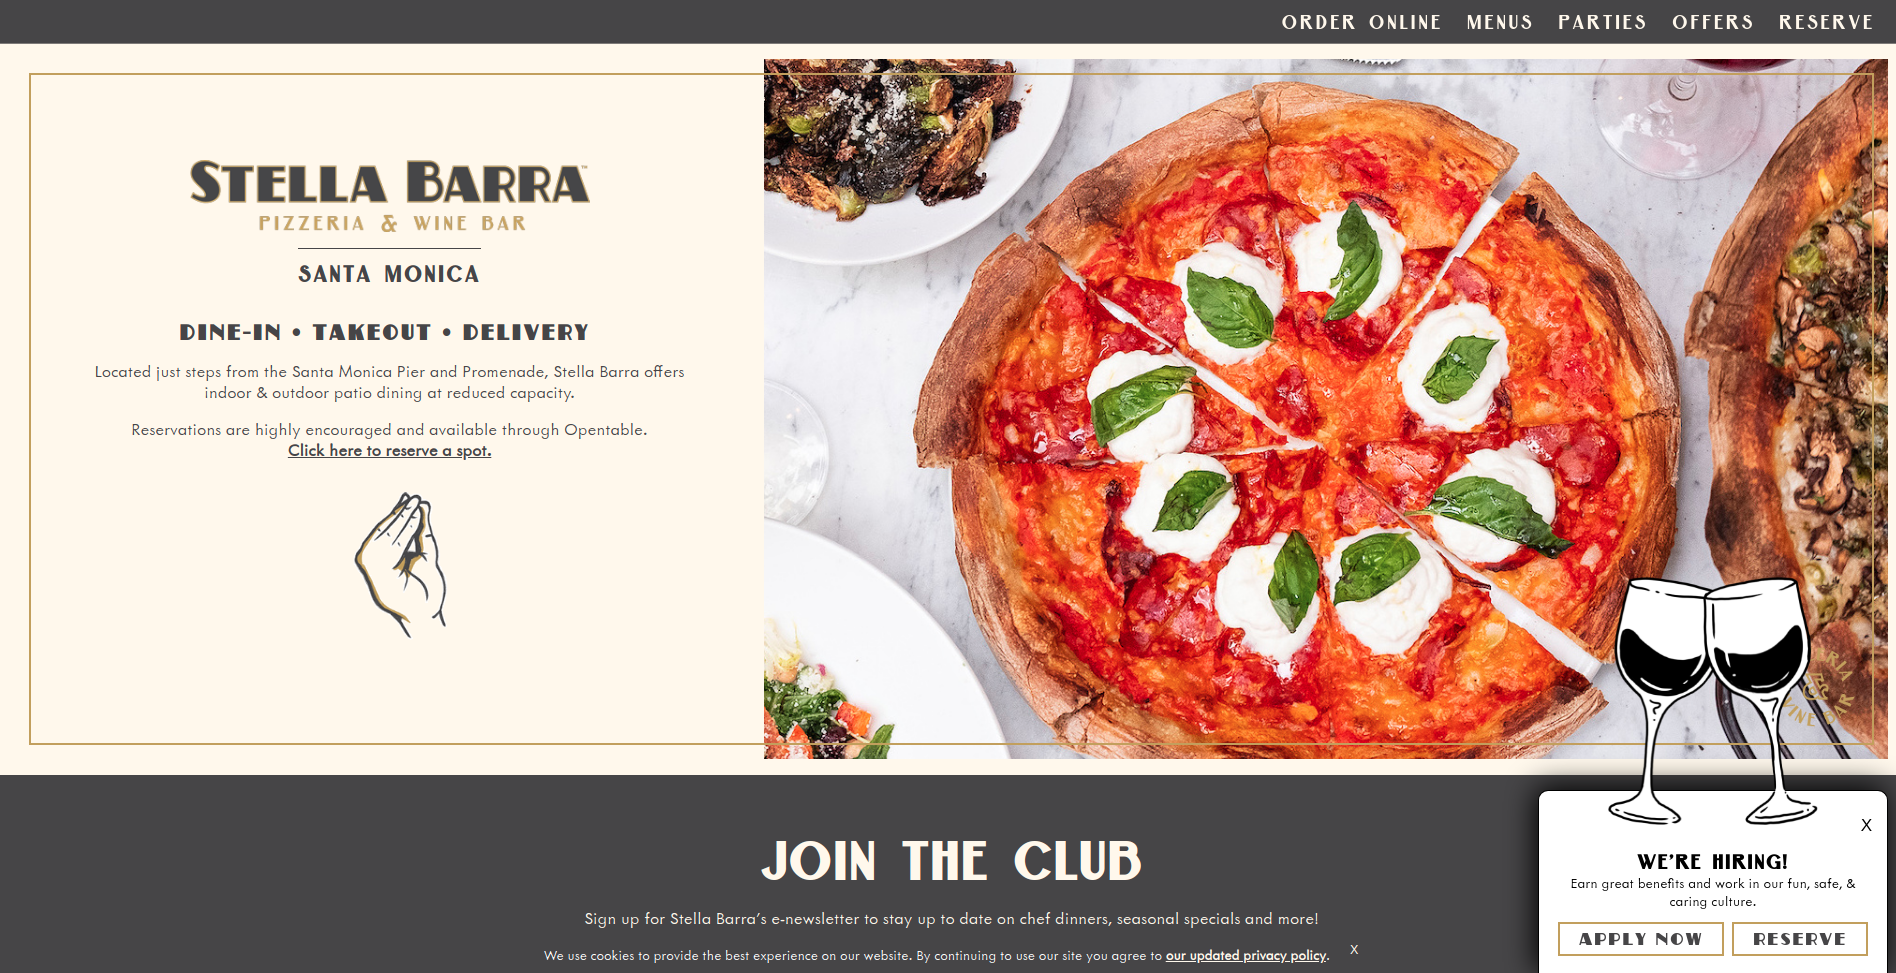 Image of Stella Barra's website showing you a great place to eat Pizza in Santa Monica